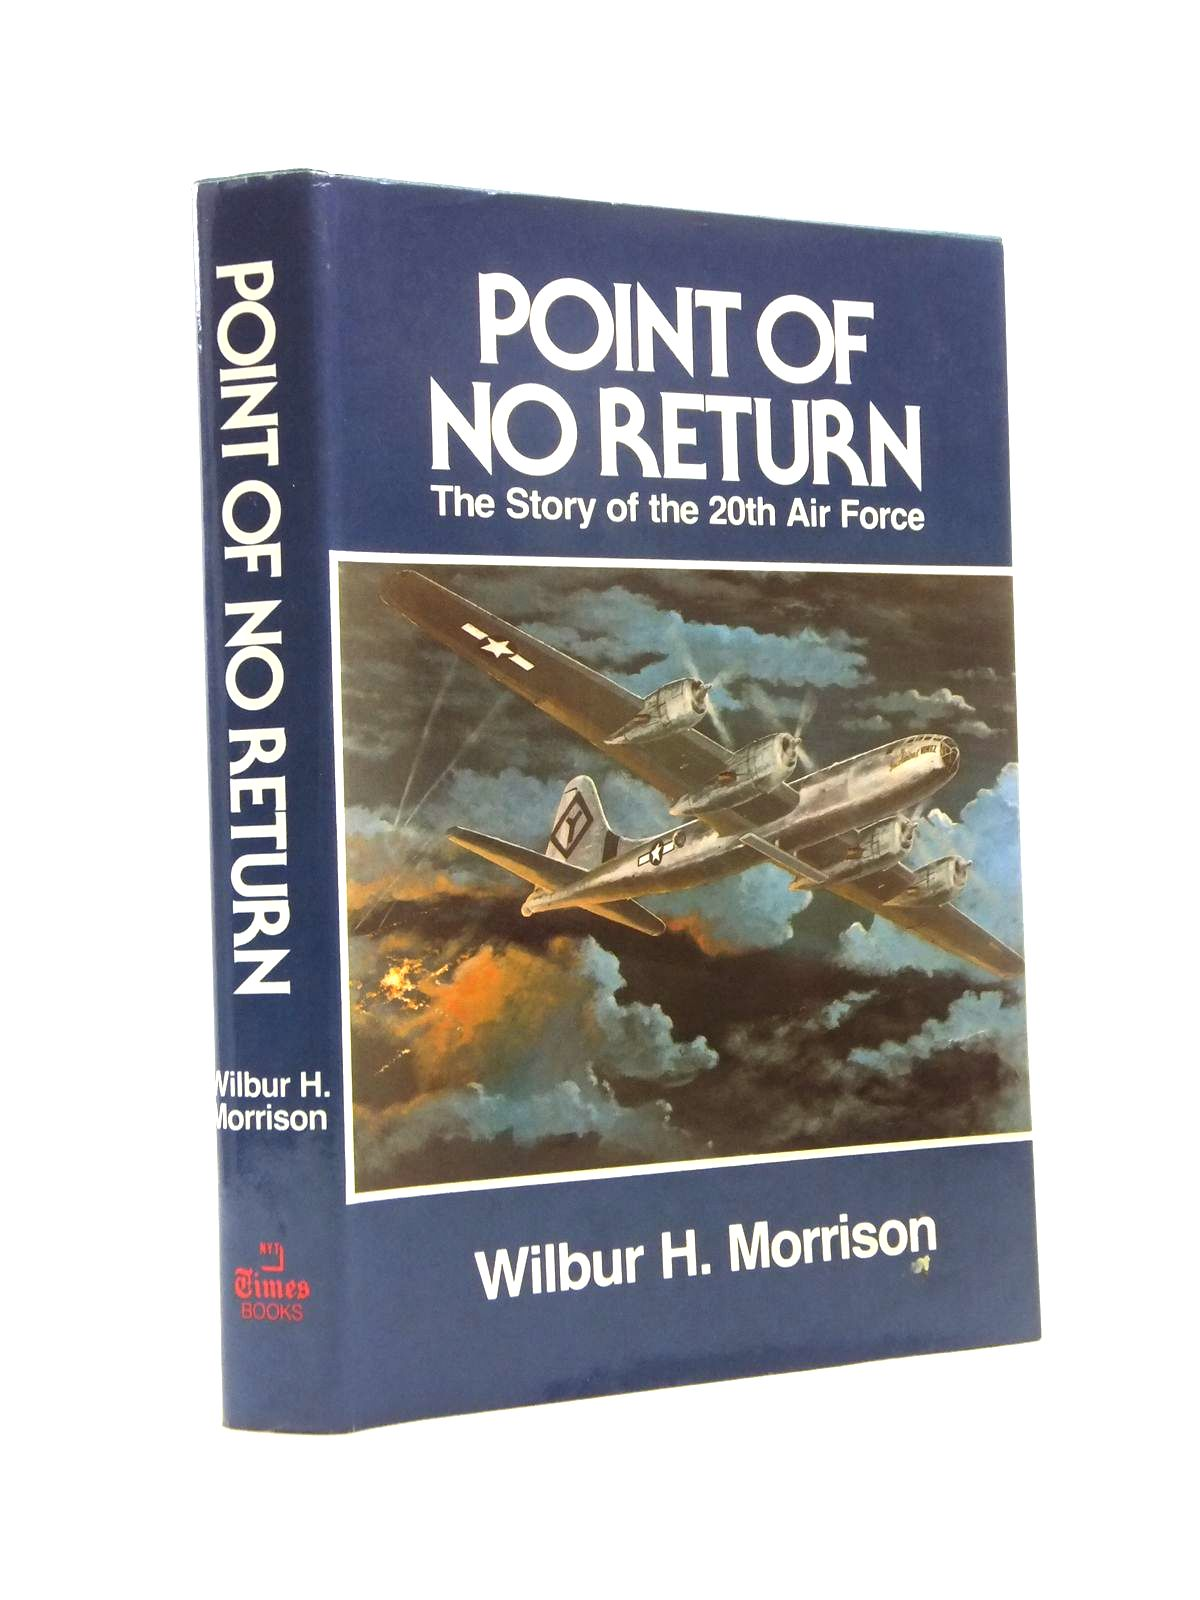 Photo of POINT OF NO RETURN THE STORY OF THE 20TH AIR FORCE written by Morrison, Wilbur H. published by Times Books (STOCK CODE: 1208445)  for sale by Stella & Rose's Books